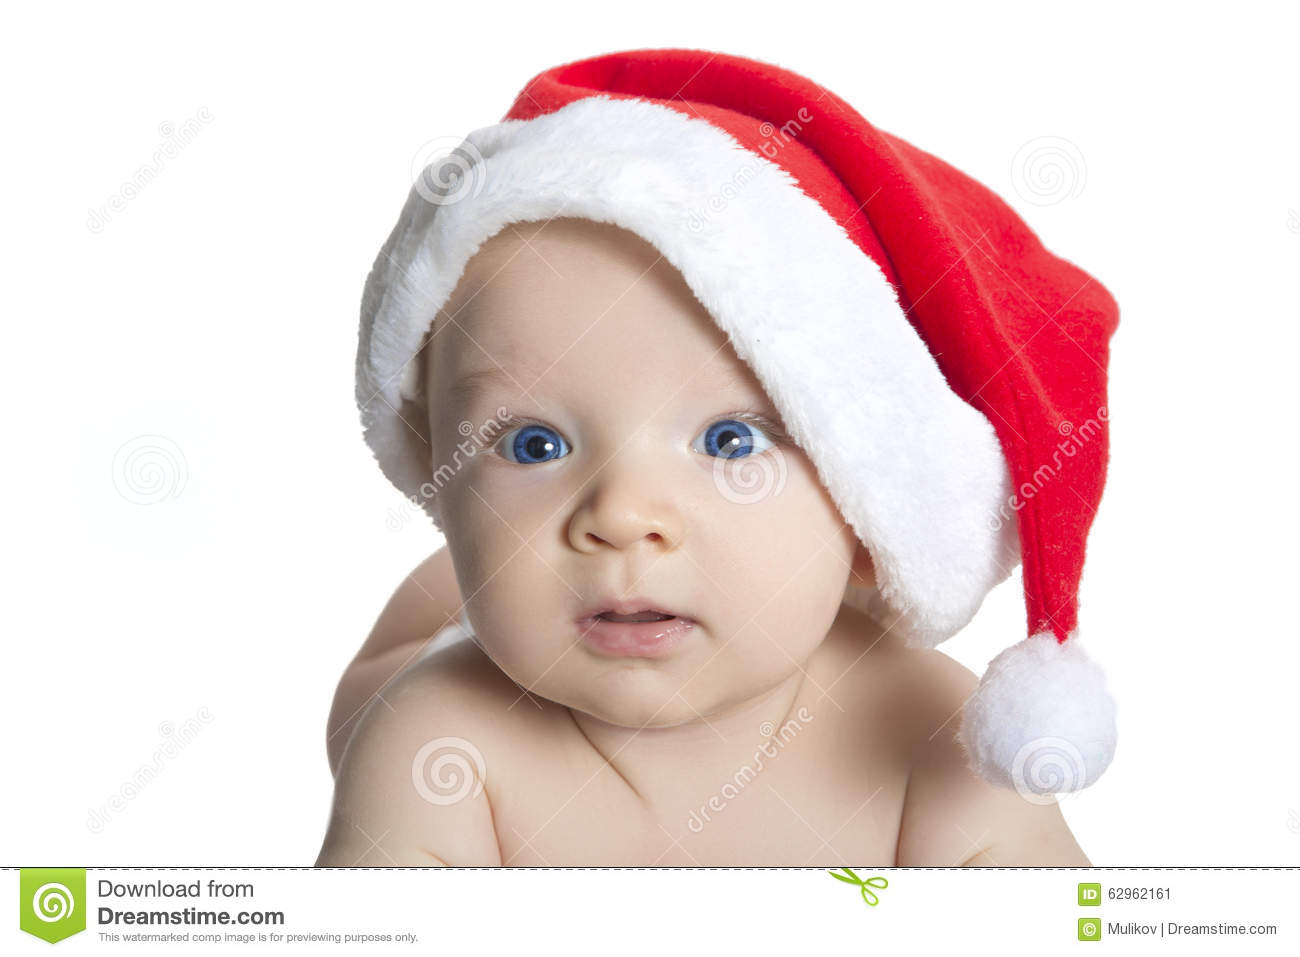 e1555ebea75 Cute Baby Boy Wearing Christmas Cap Stock Image - Image of celebrate ...